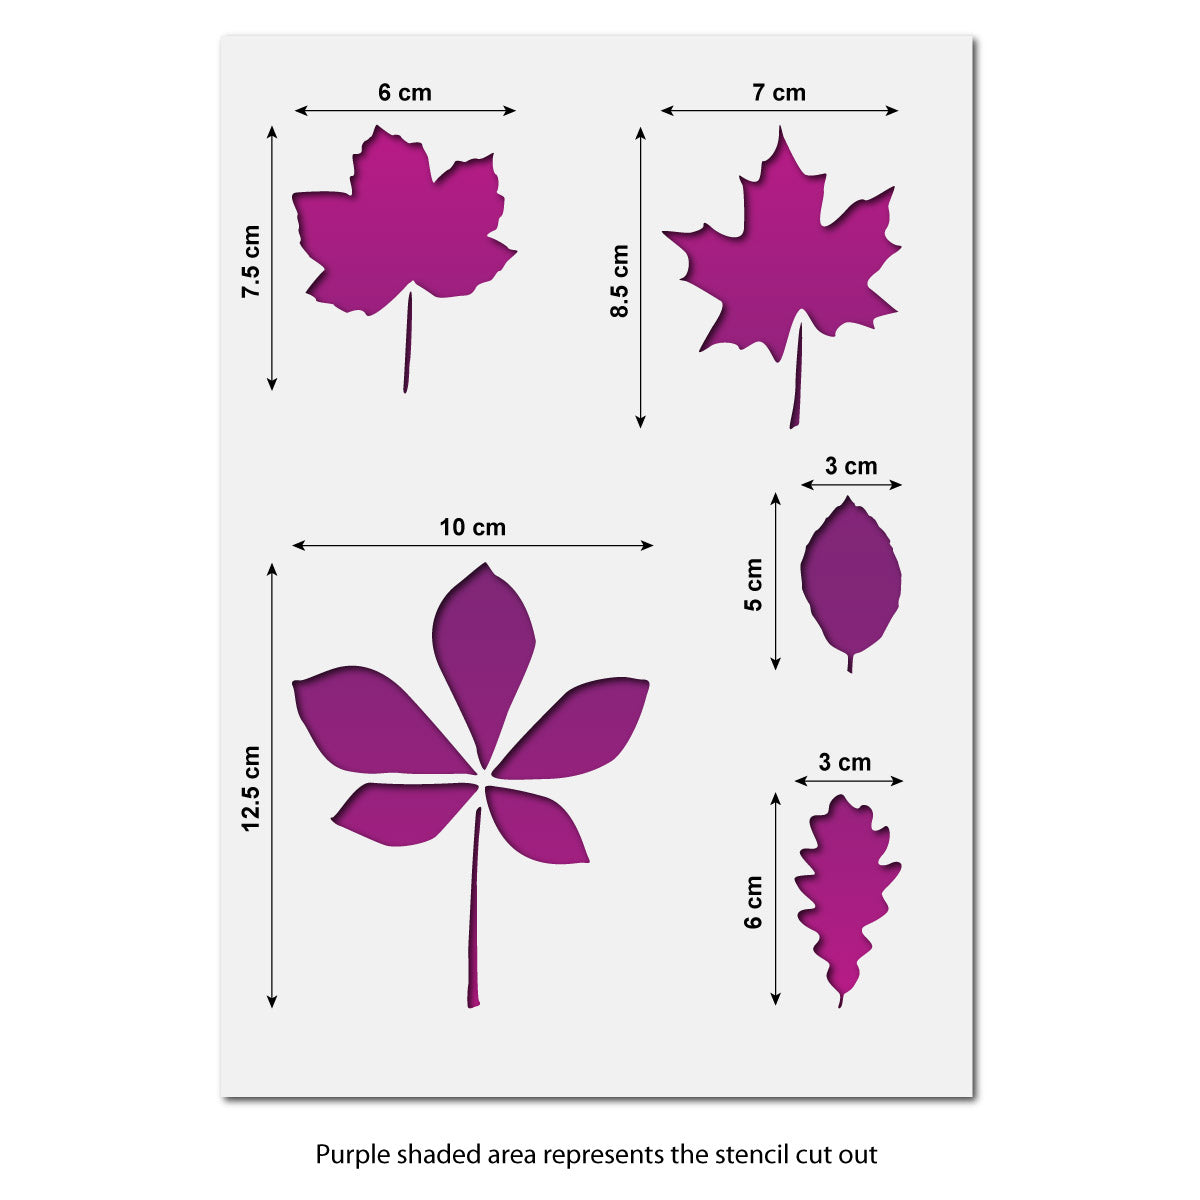 CraftStar Leaf Stencil Set - Size Guide